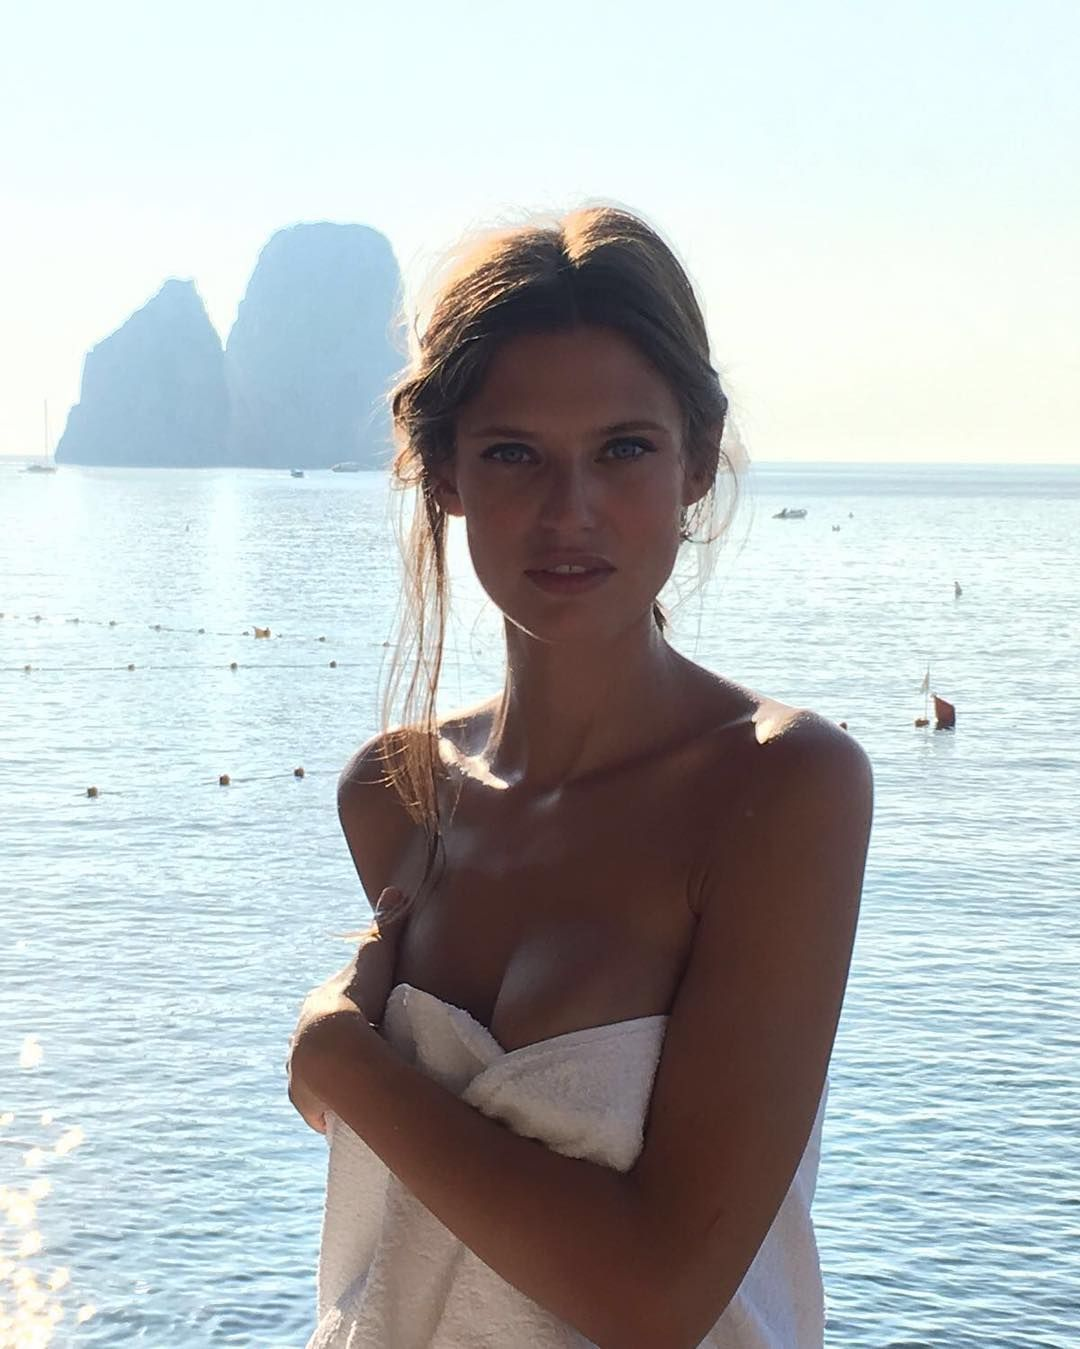 Selfie Bianca Balti nude (98 foto and video), Ass, Cleavage, Boobs, swimsuit 2018